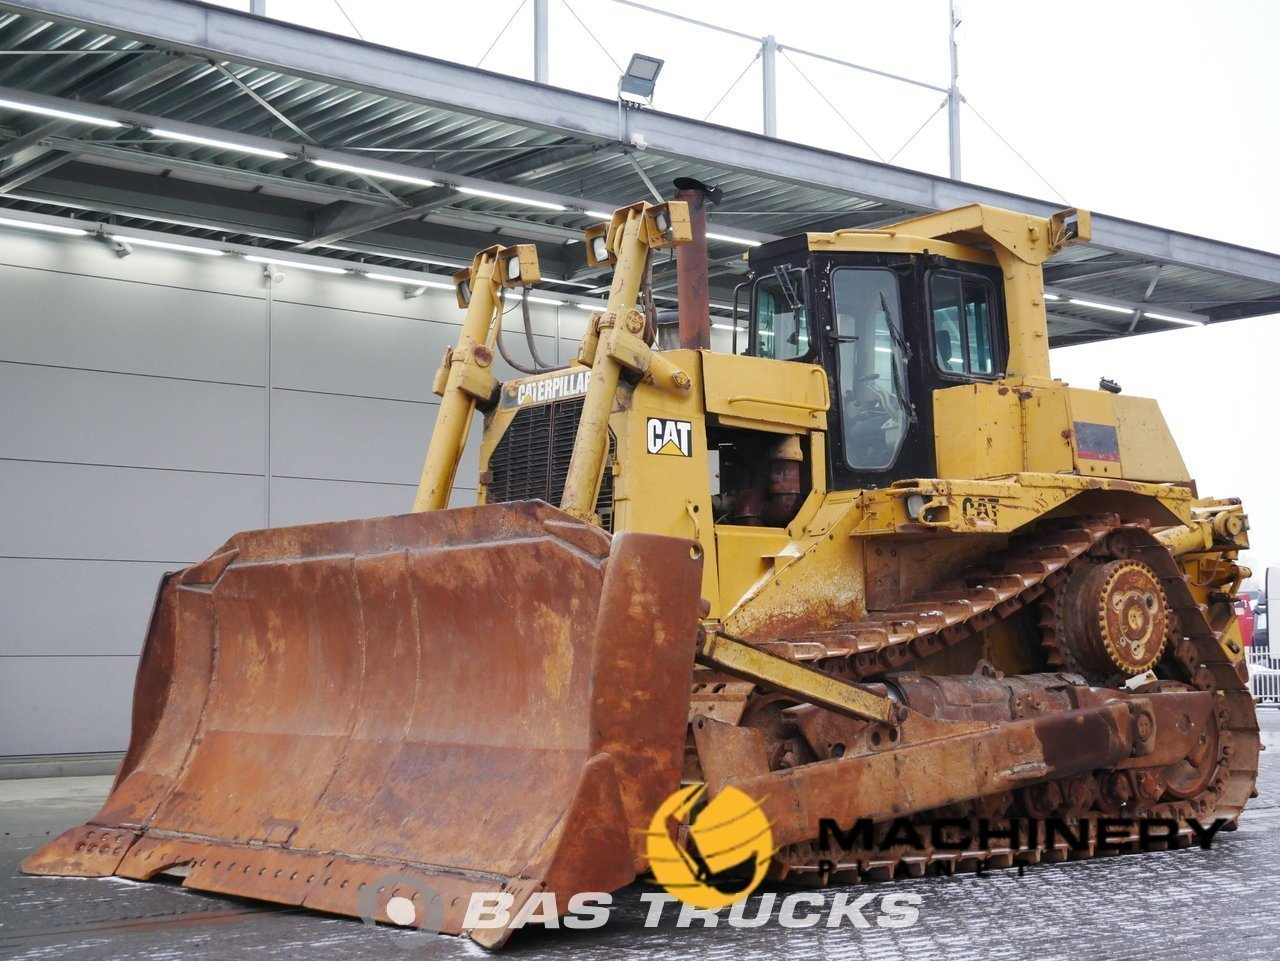 Used-Construction-equipment-Caterpillar-D9R-Track-2001_145931_1-1553935259299_5c9f2b9b49156-1.jpg